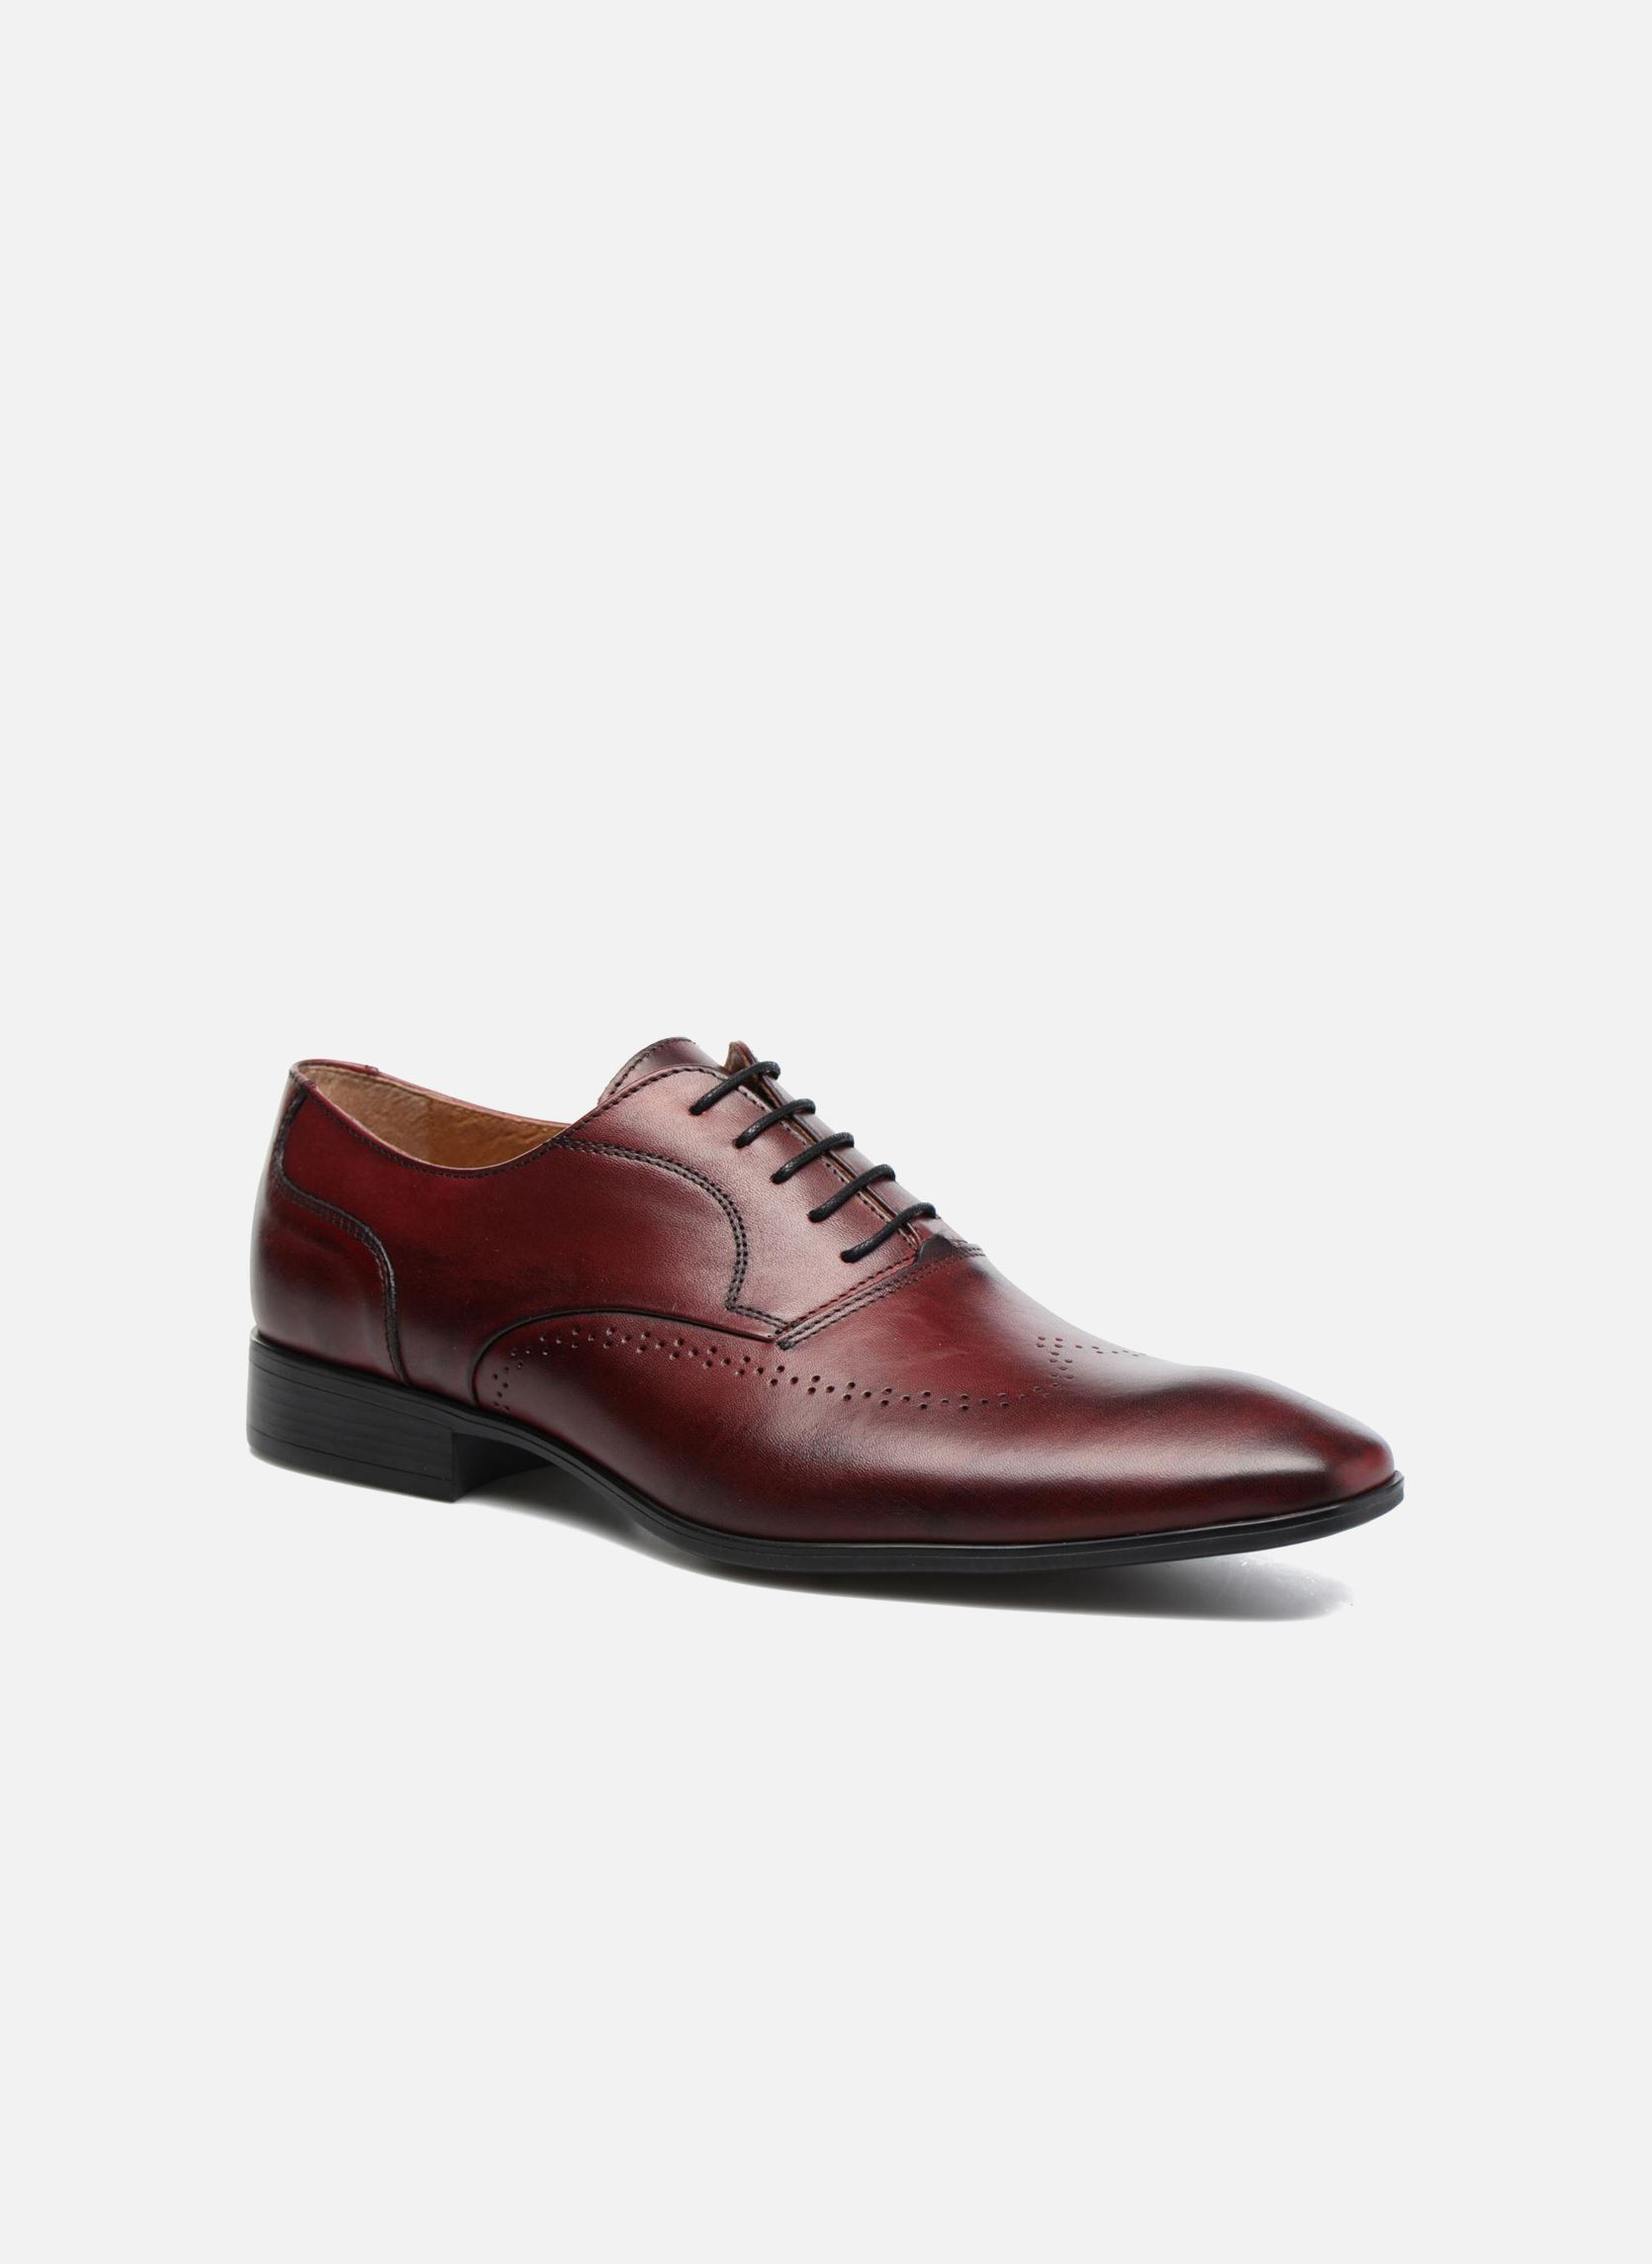 Clarks Shoes Romford